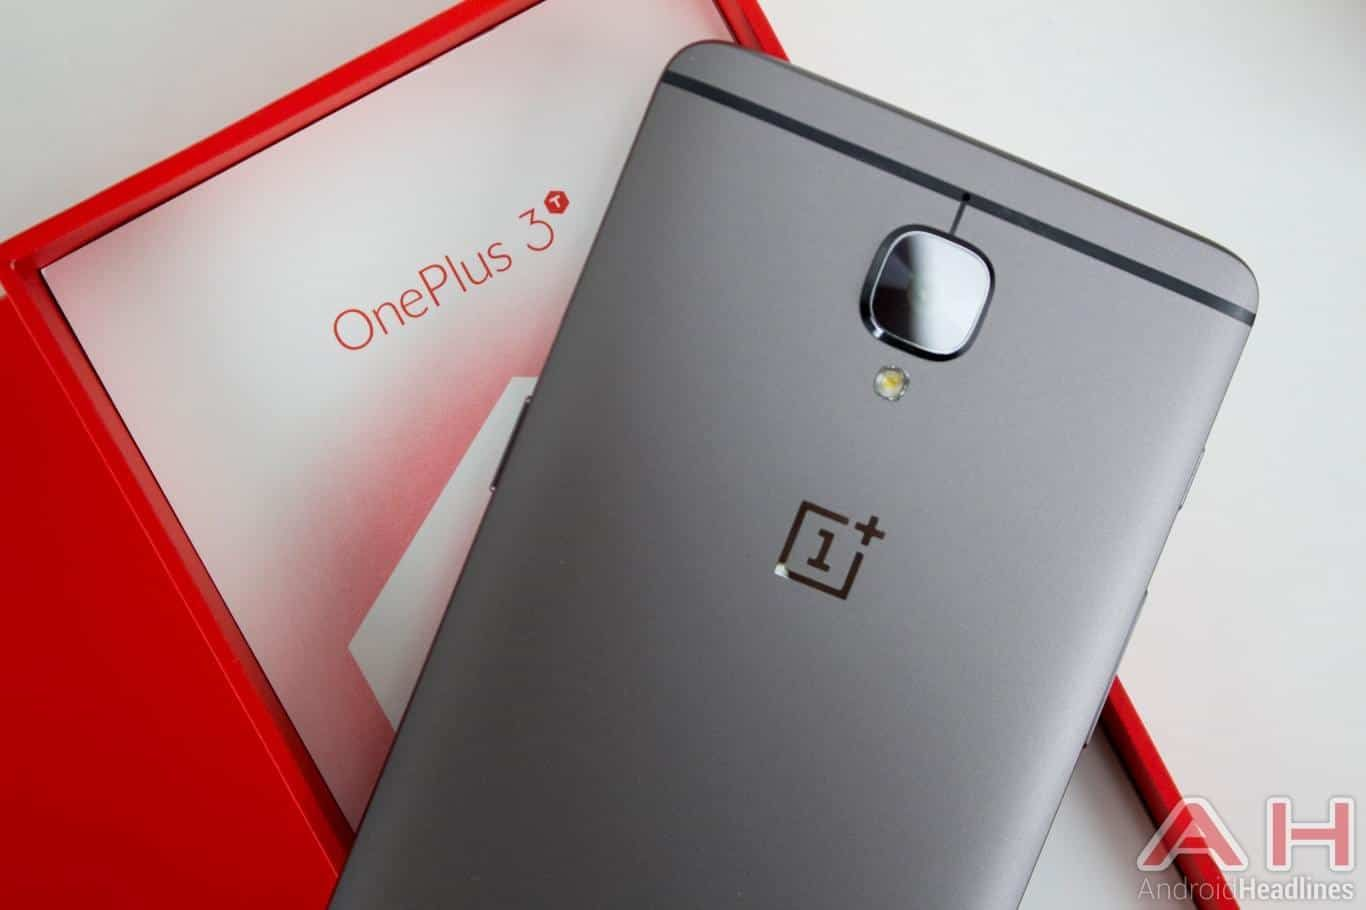 OnePlus 3T Won't Be Discontinued In India For Now - Android Headlines